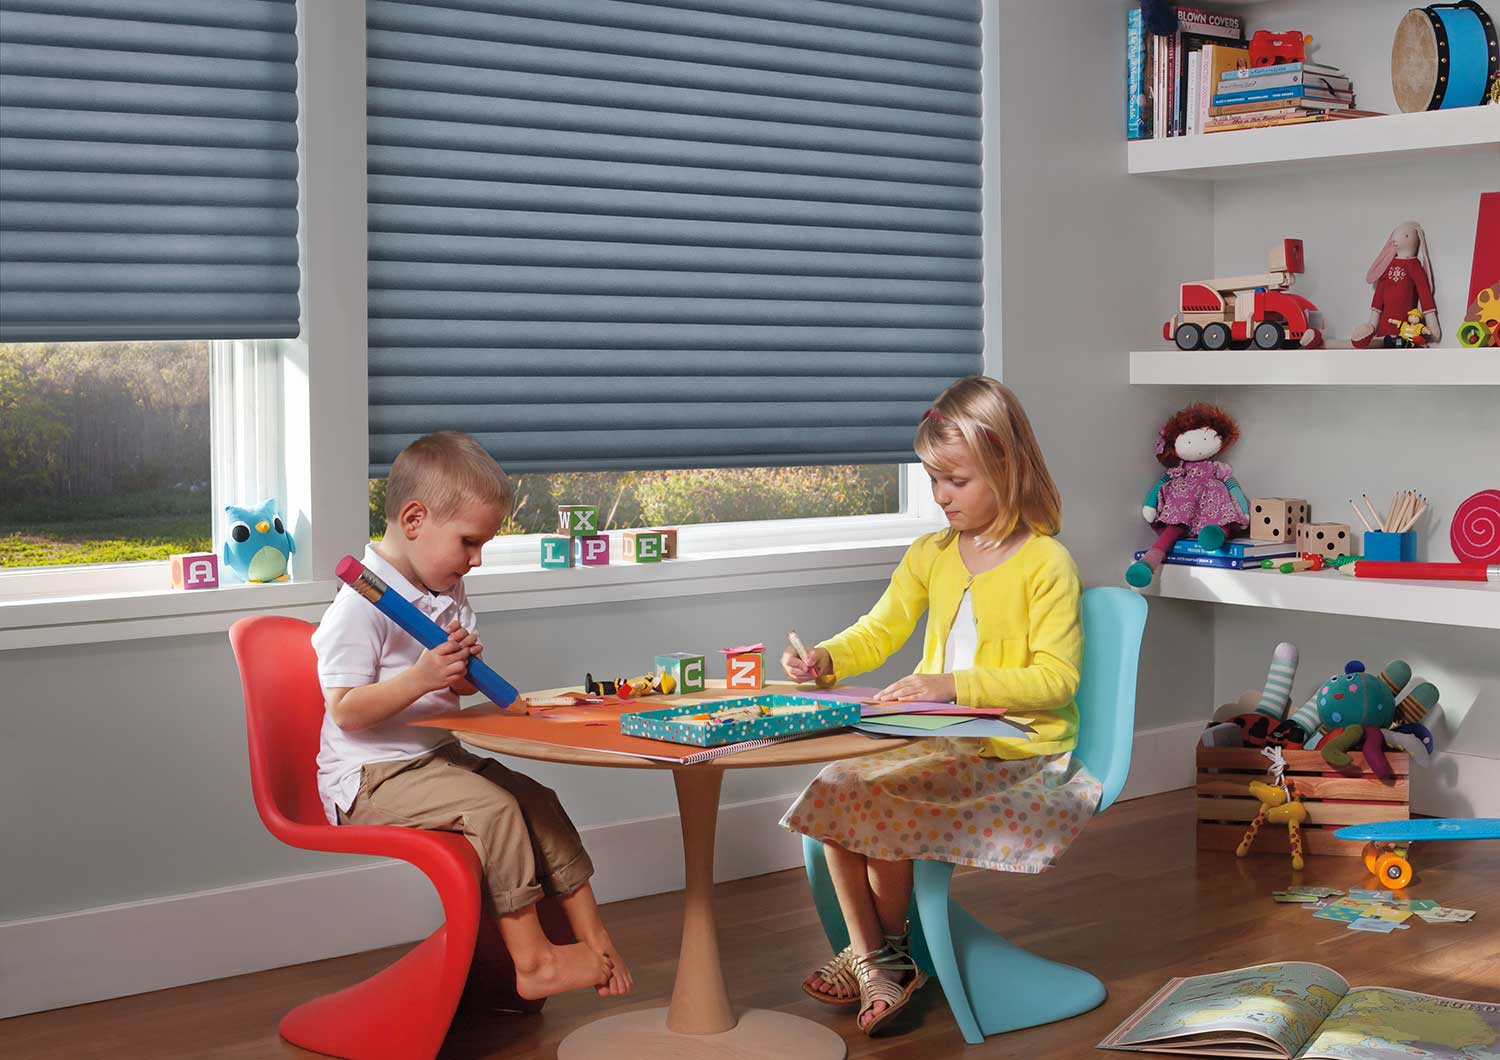 SAFETY IS EVERYTHING - Sonnette™ Cellular Roller Shades are 100% cordless for enhanced safety, convenience and ease of use in homes with children or pets. This is a great window treatment to help protect your little ones!